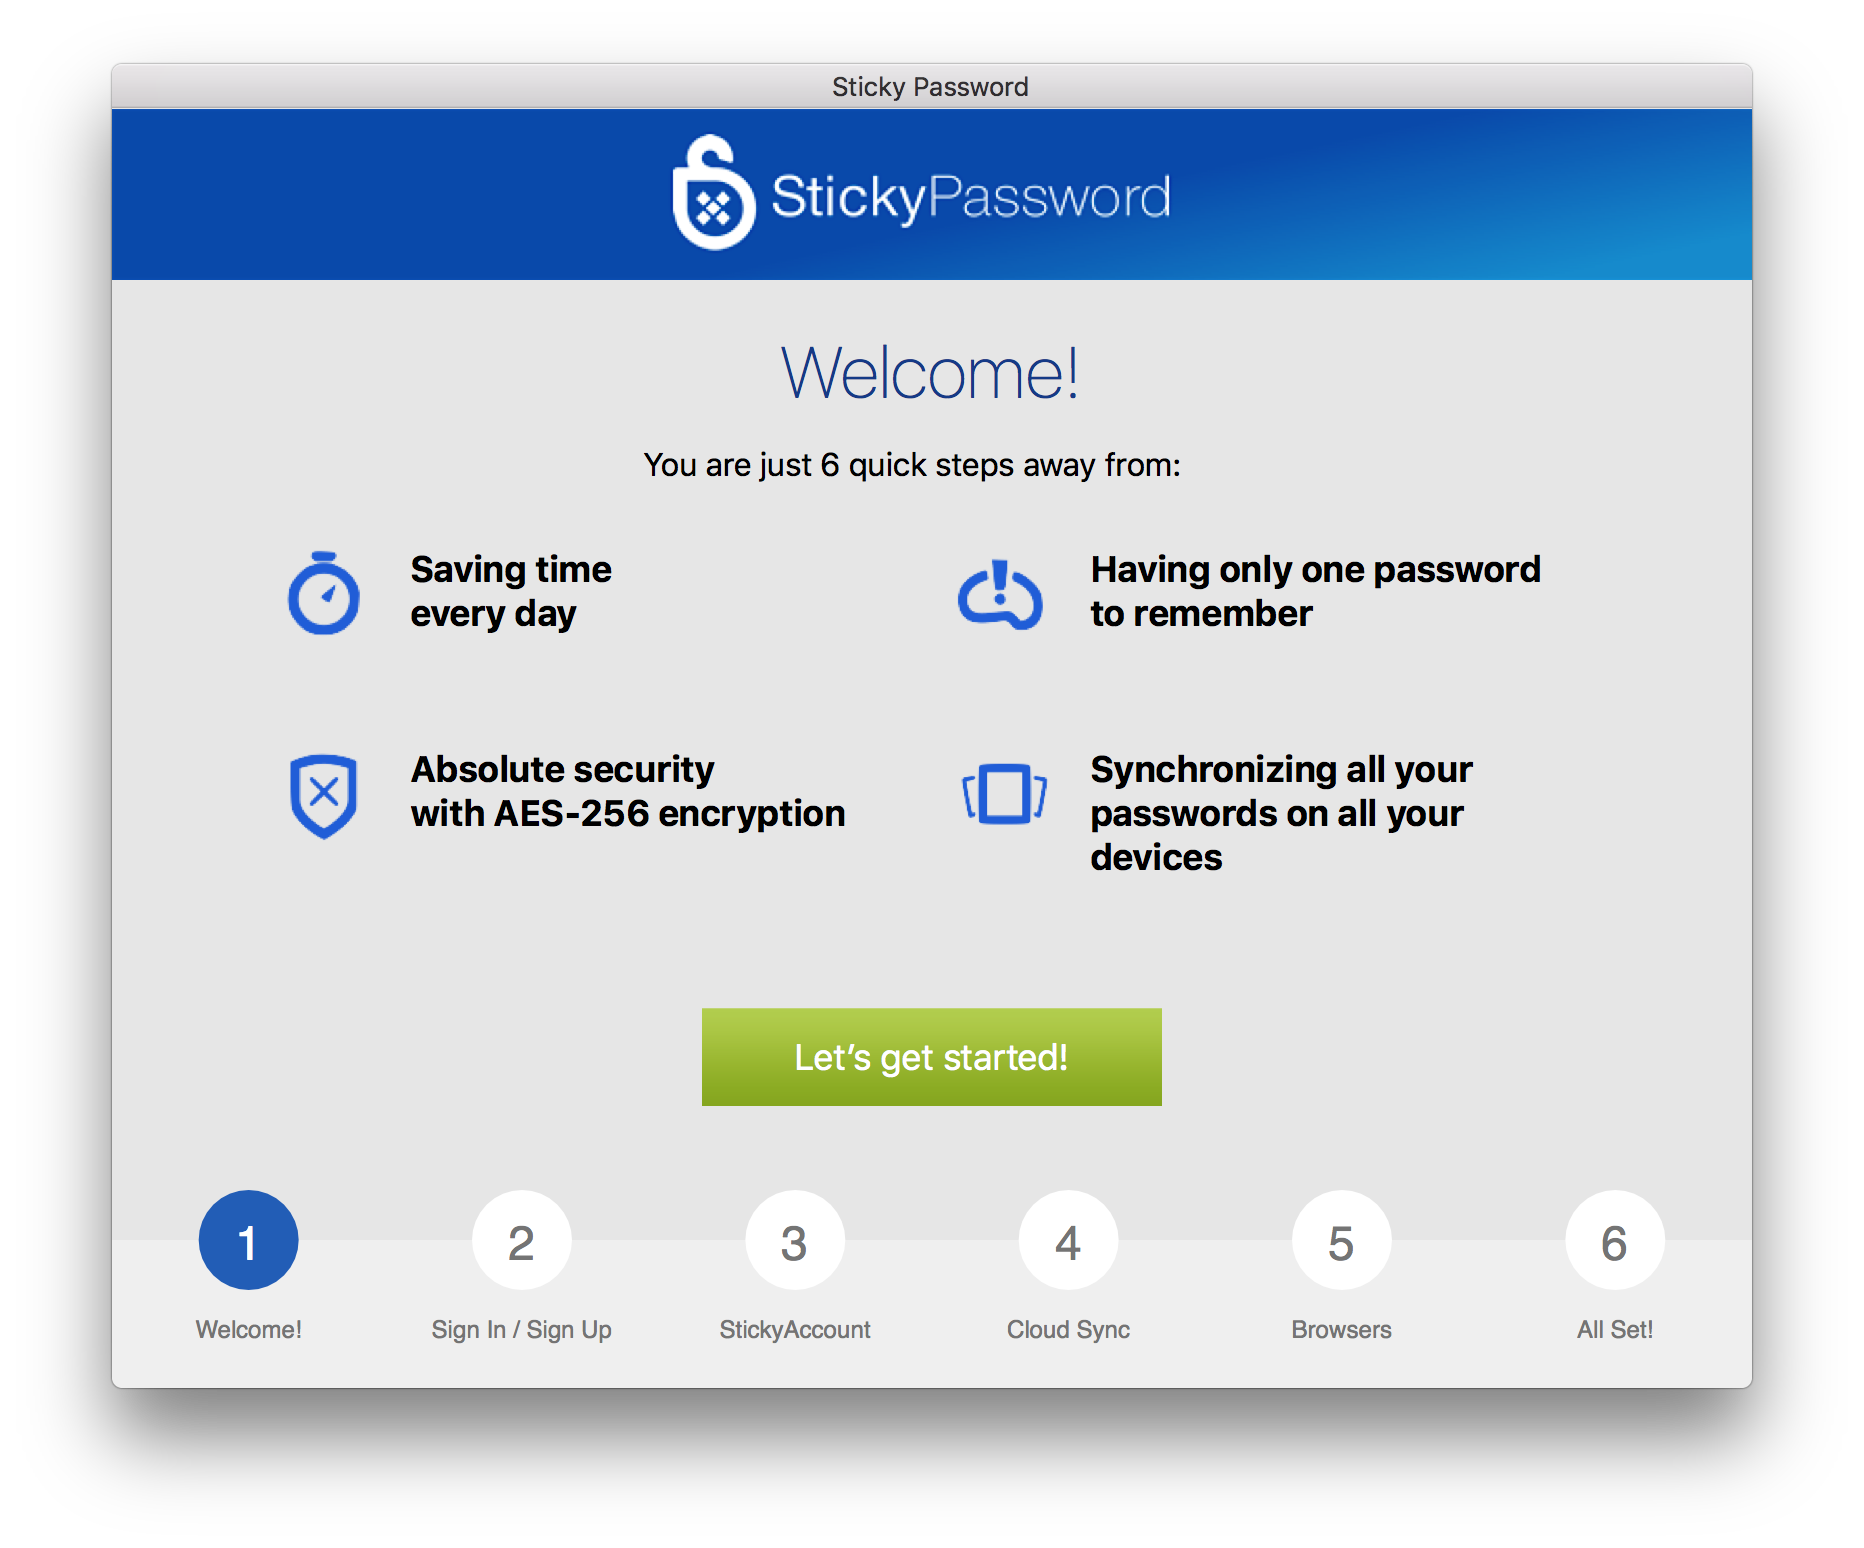 The Sticky Password First Run Wizard will appear and walk you through the setup.